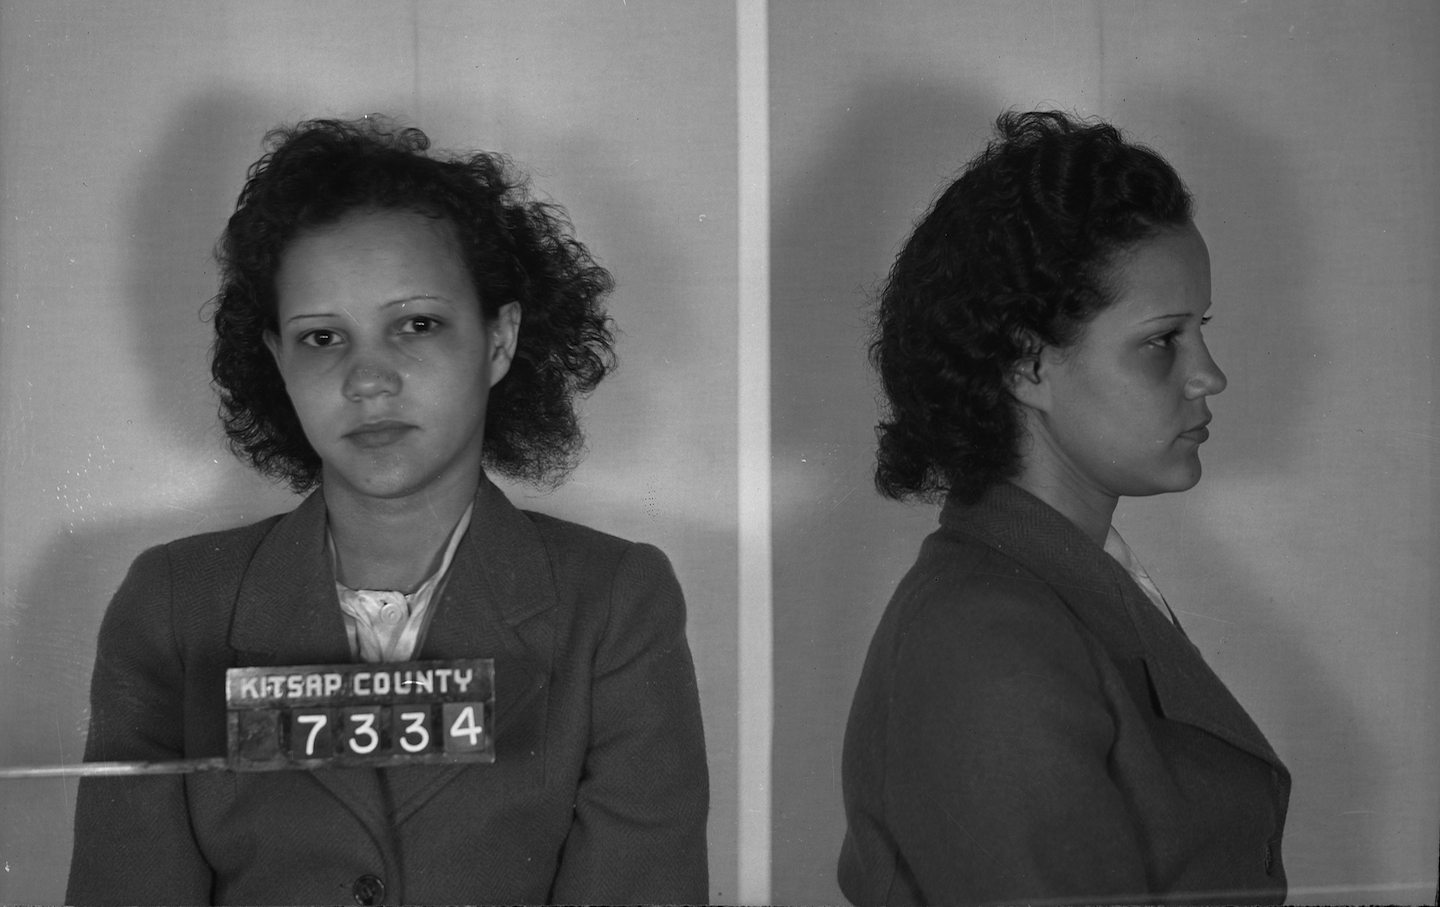 Taylor after being arrested for vagrancy in Washington State in 1944. (Washington State Archives, Puget Sound : Little Brown)